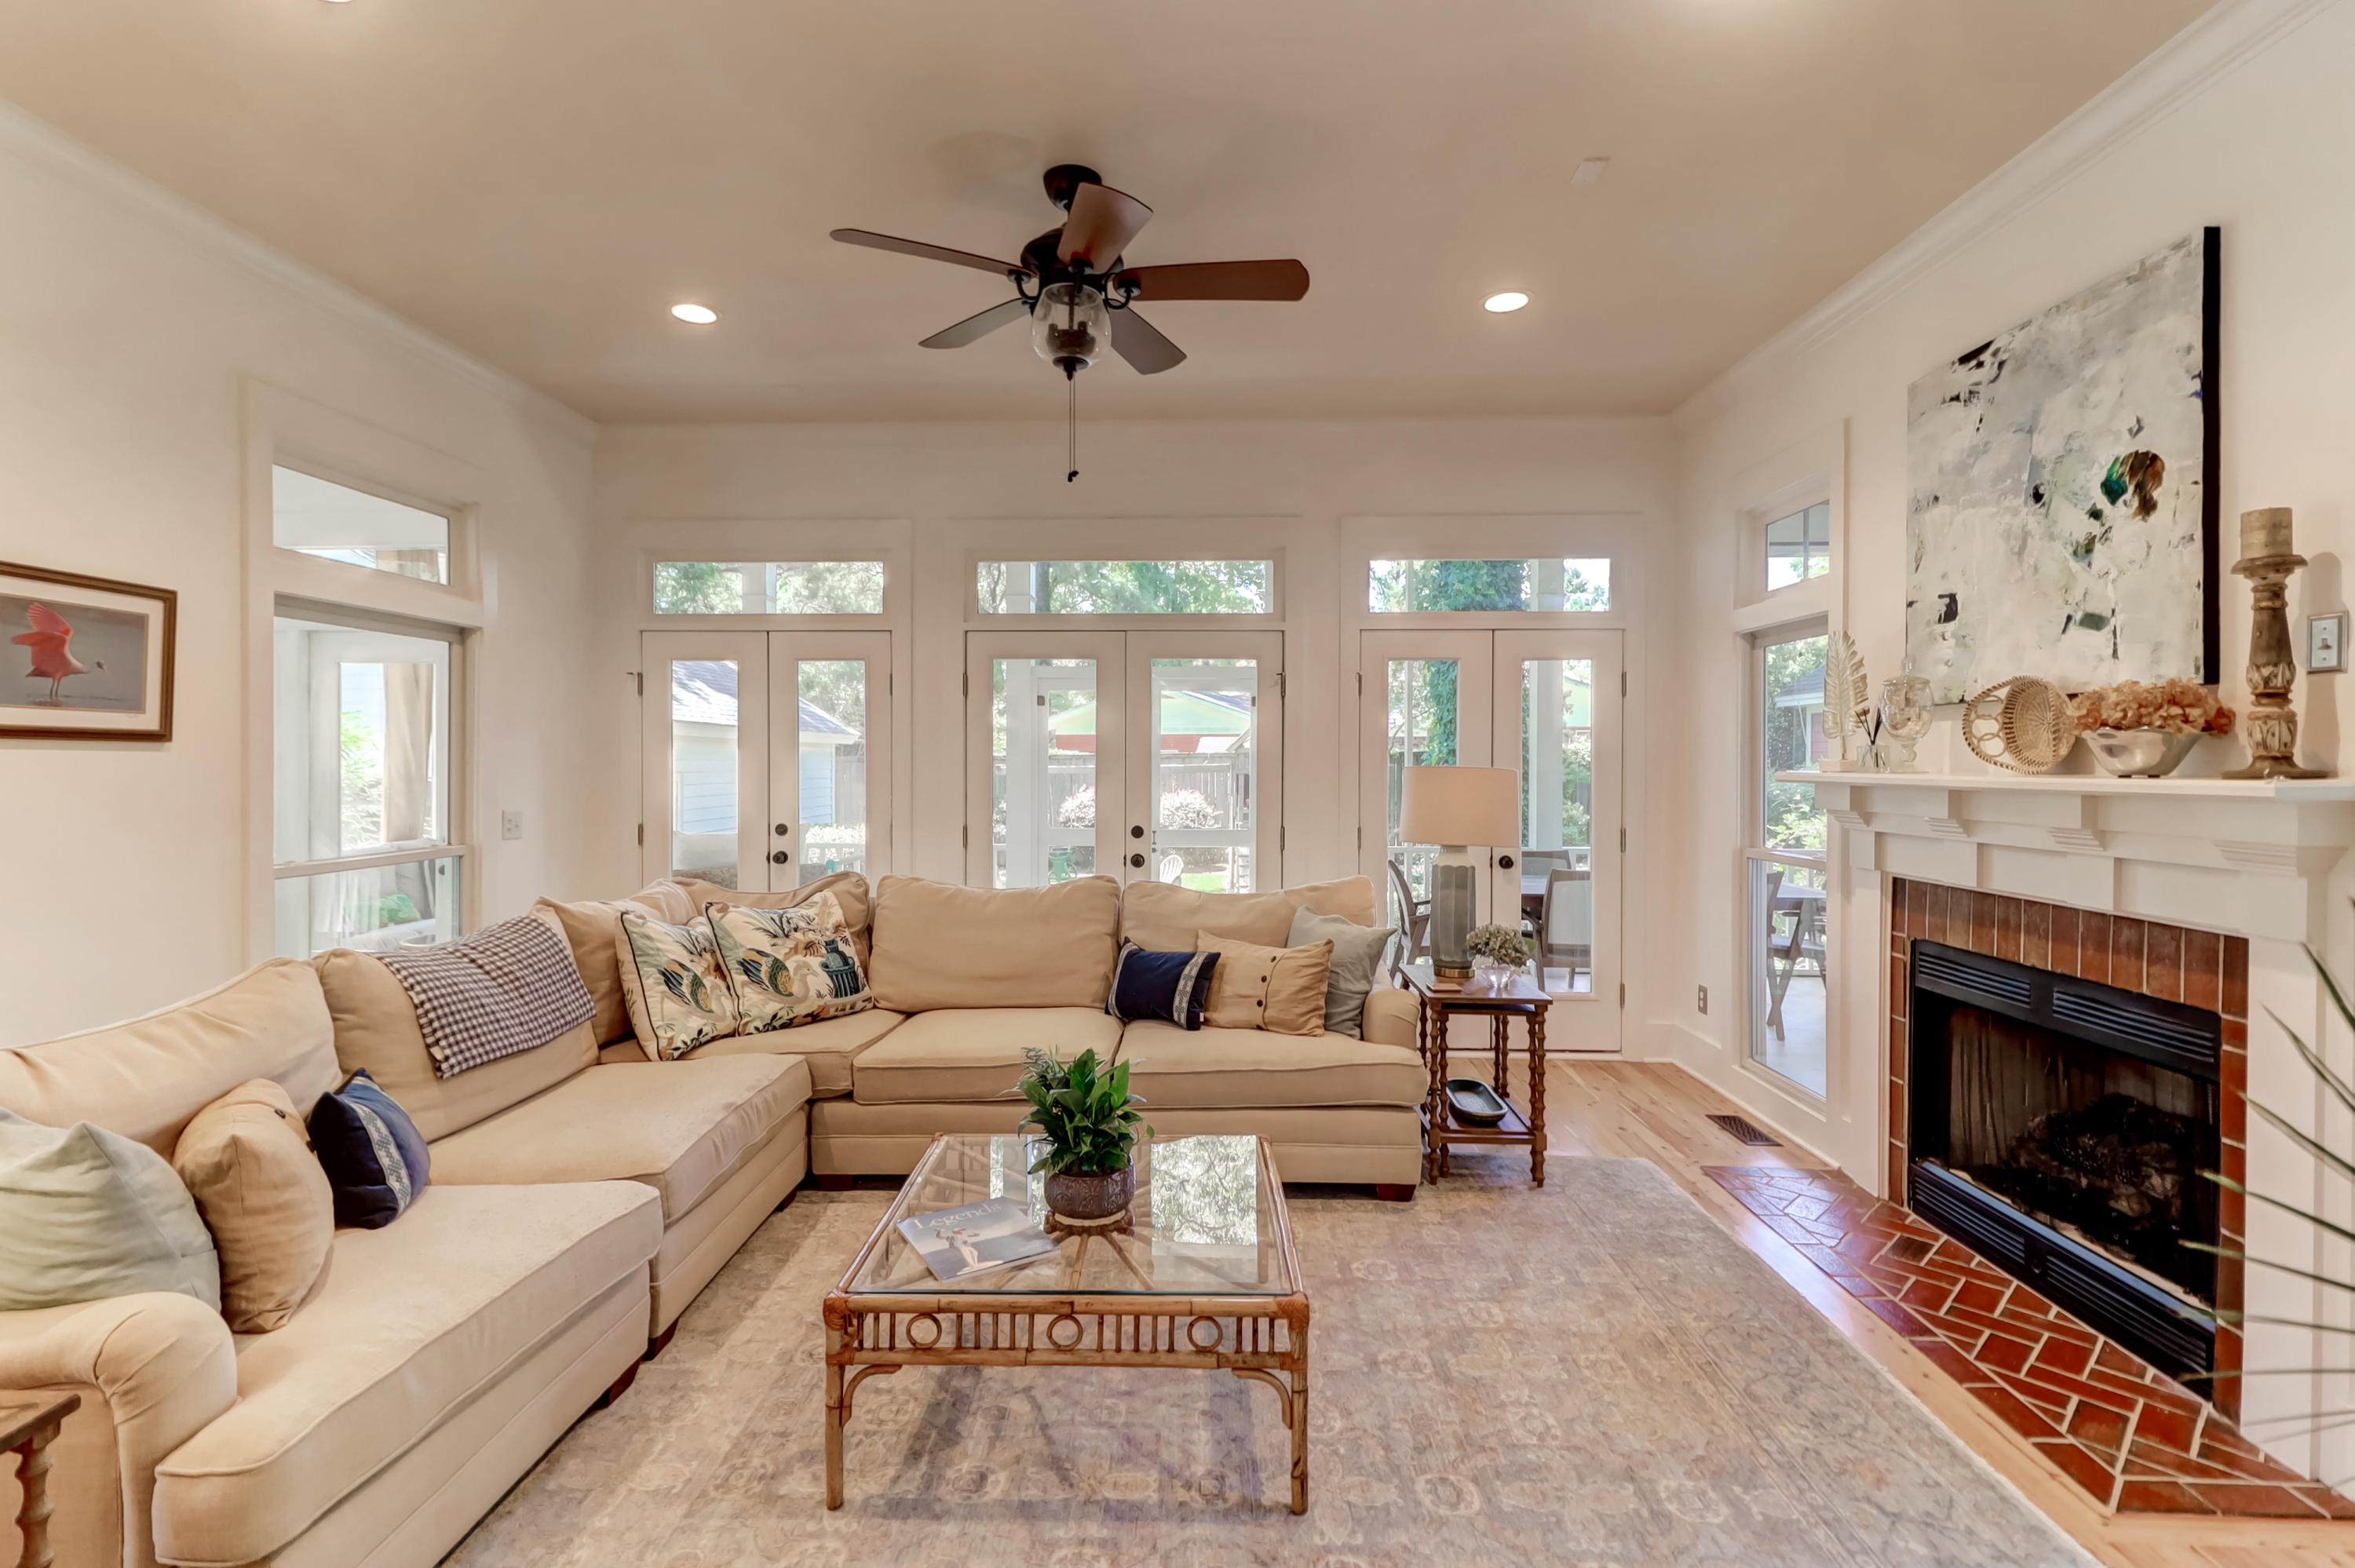 The Villages In St Johns Woods Homes For Sale - 5056 Coral Reef Dr, Johns Island, SC - 57